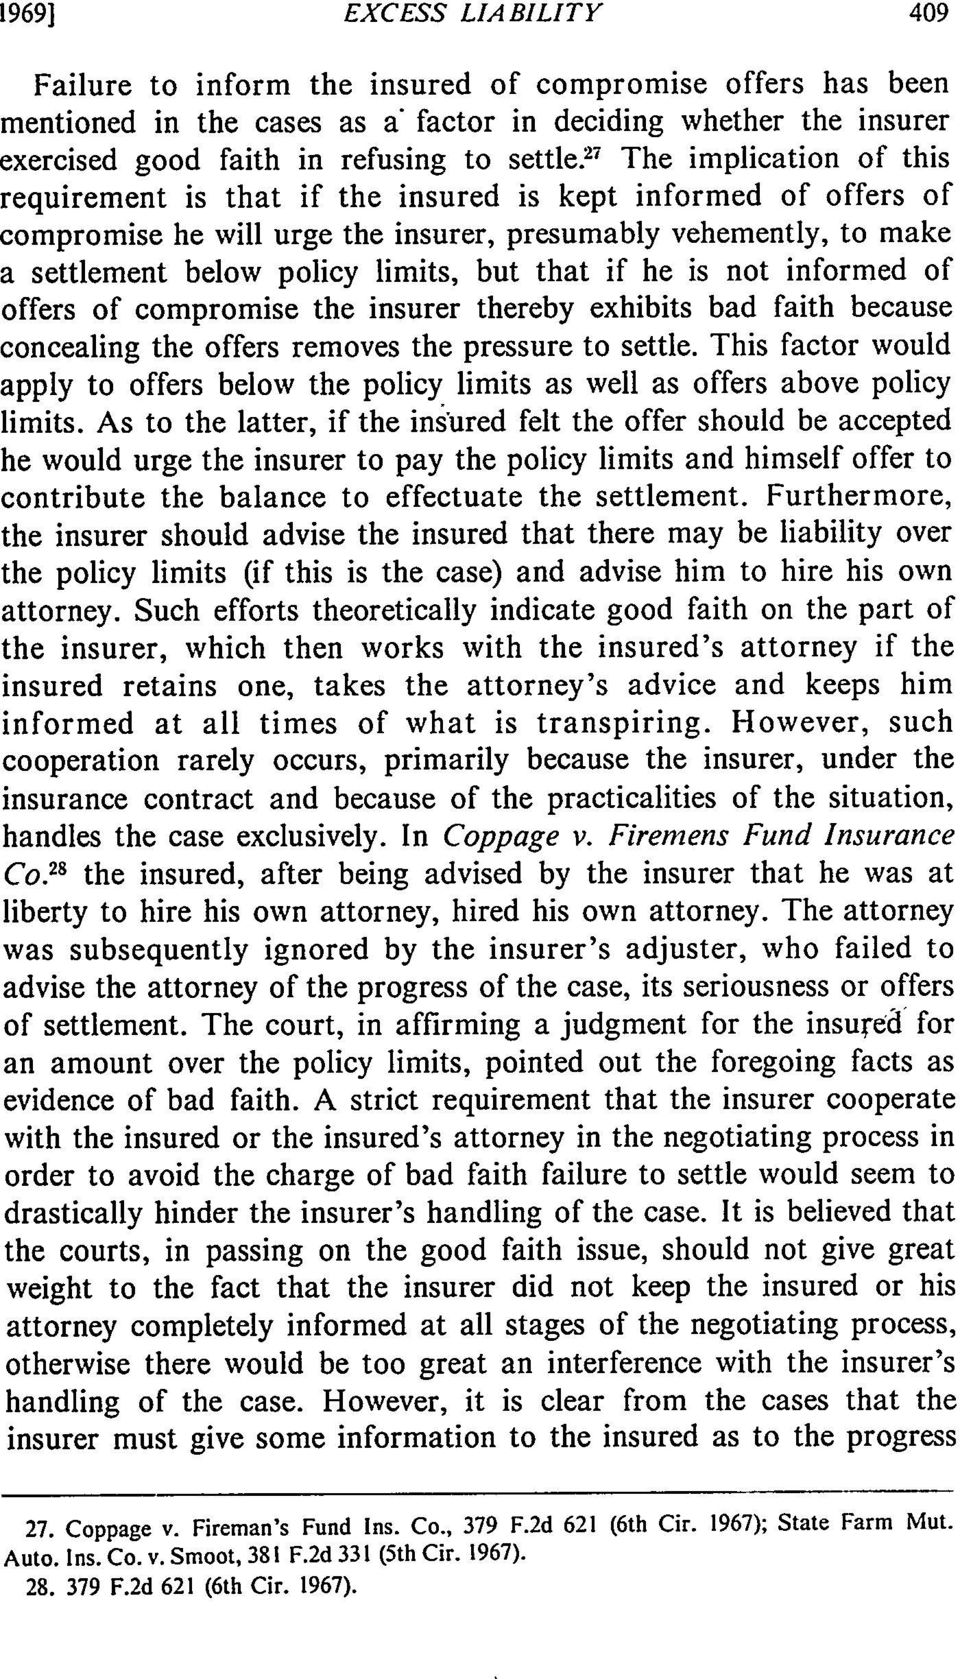 that if he is not informed of offers of compromise the insurer thereby exhibits bad faith because concealing the offers removes the pressure to settle.